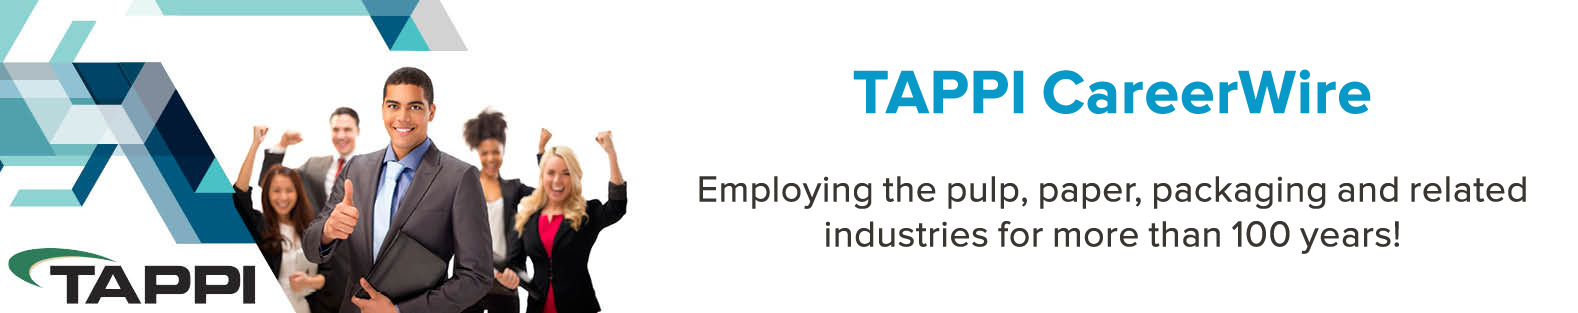 TAPPI CareerWire